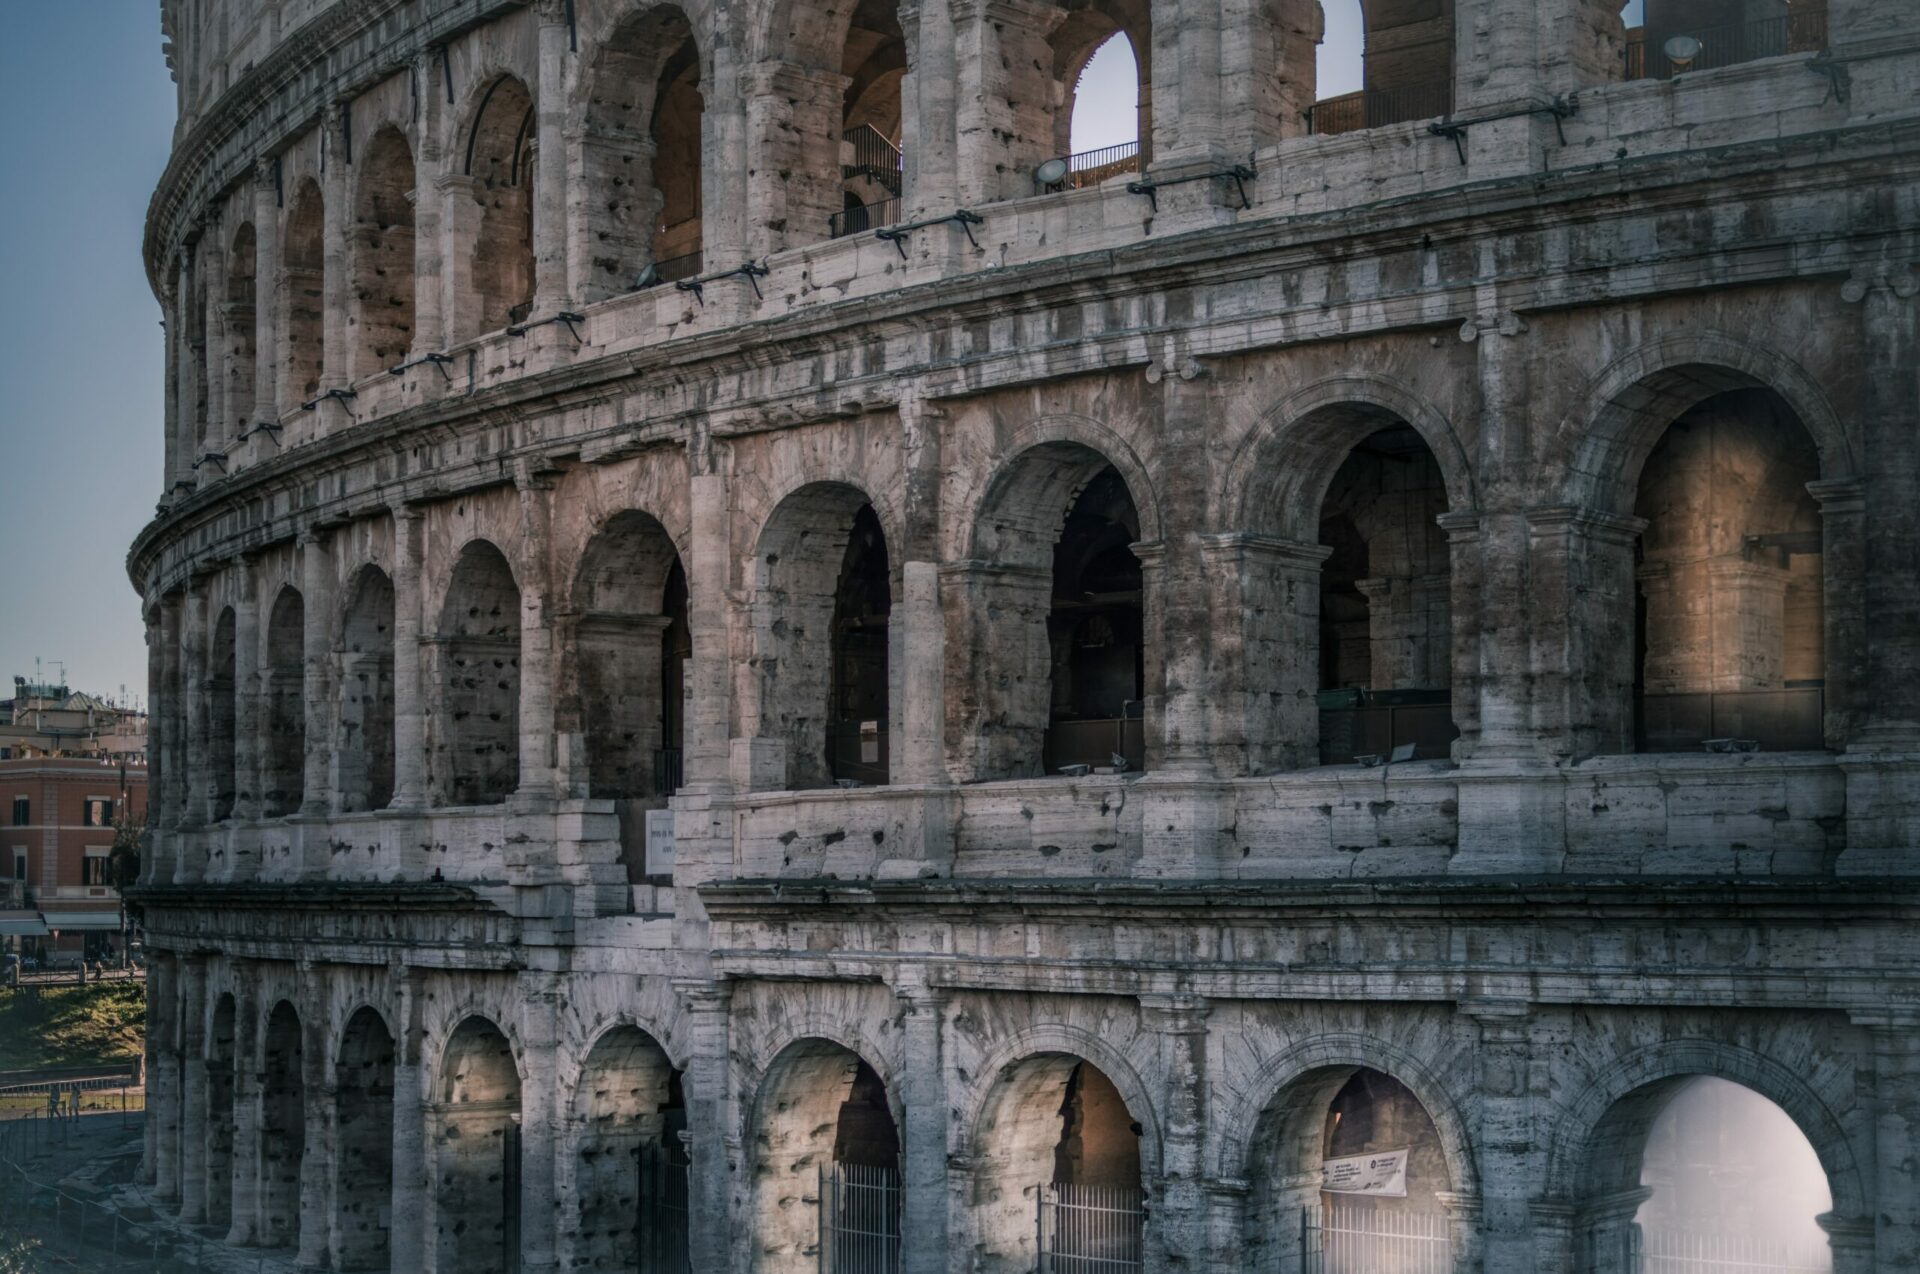 What Is The Average Cost For Main Attractions In Rome? 1